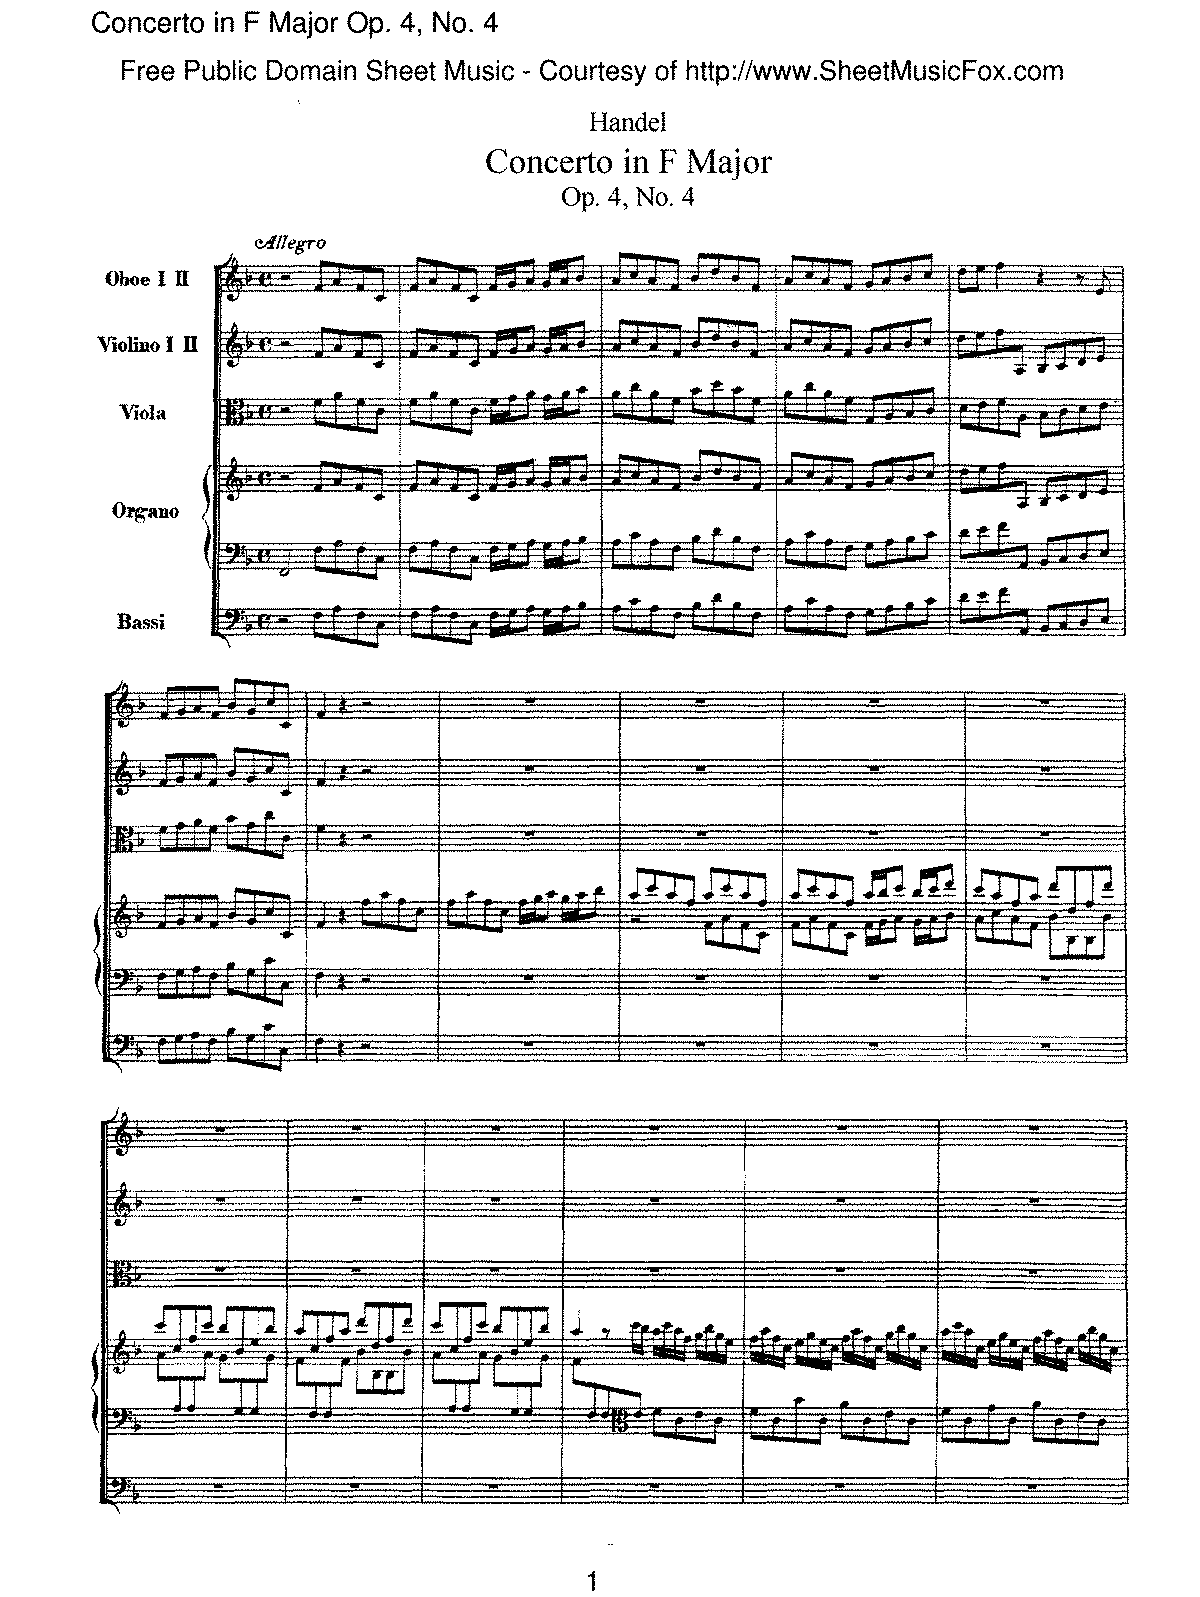 Handel - Concerto in F major, Op.4 No.4.pdf